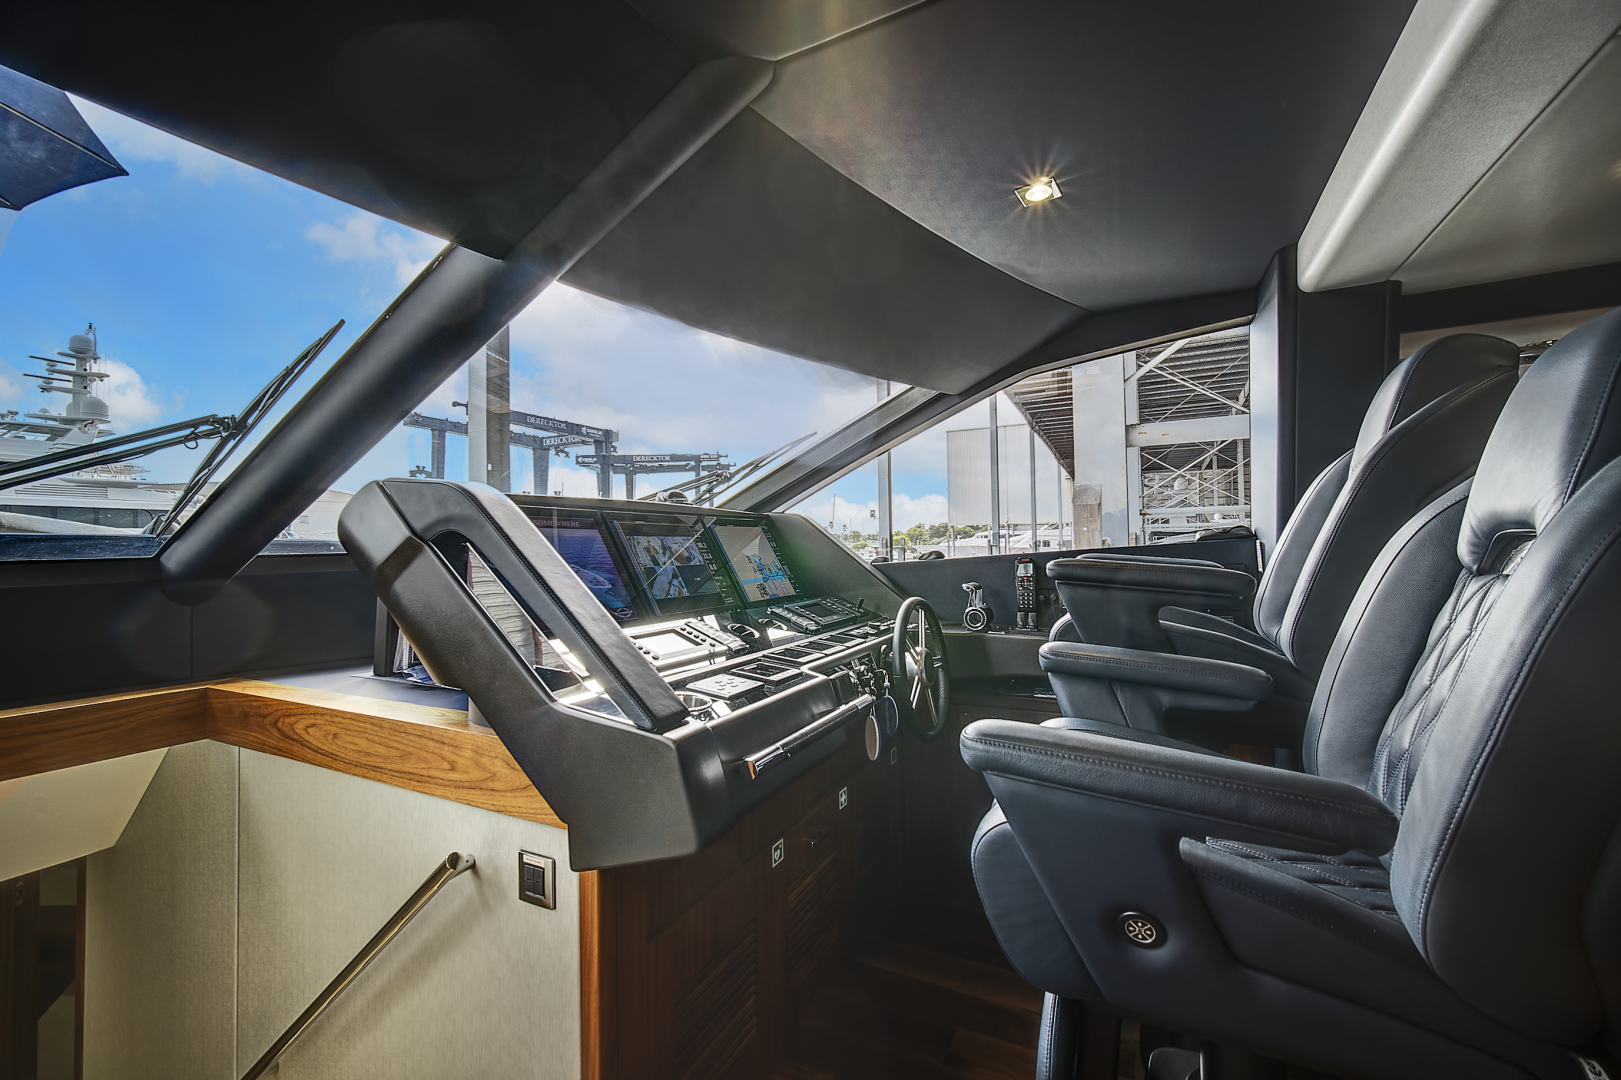 Sunseeker-86 Yacht 2019-Its Noon Somewhere Fort Lauderdale-Florida-United States-1556710 | Thumbnail